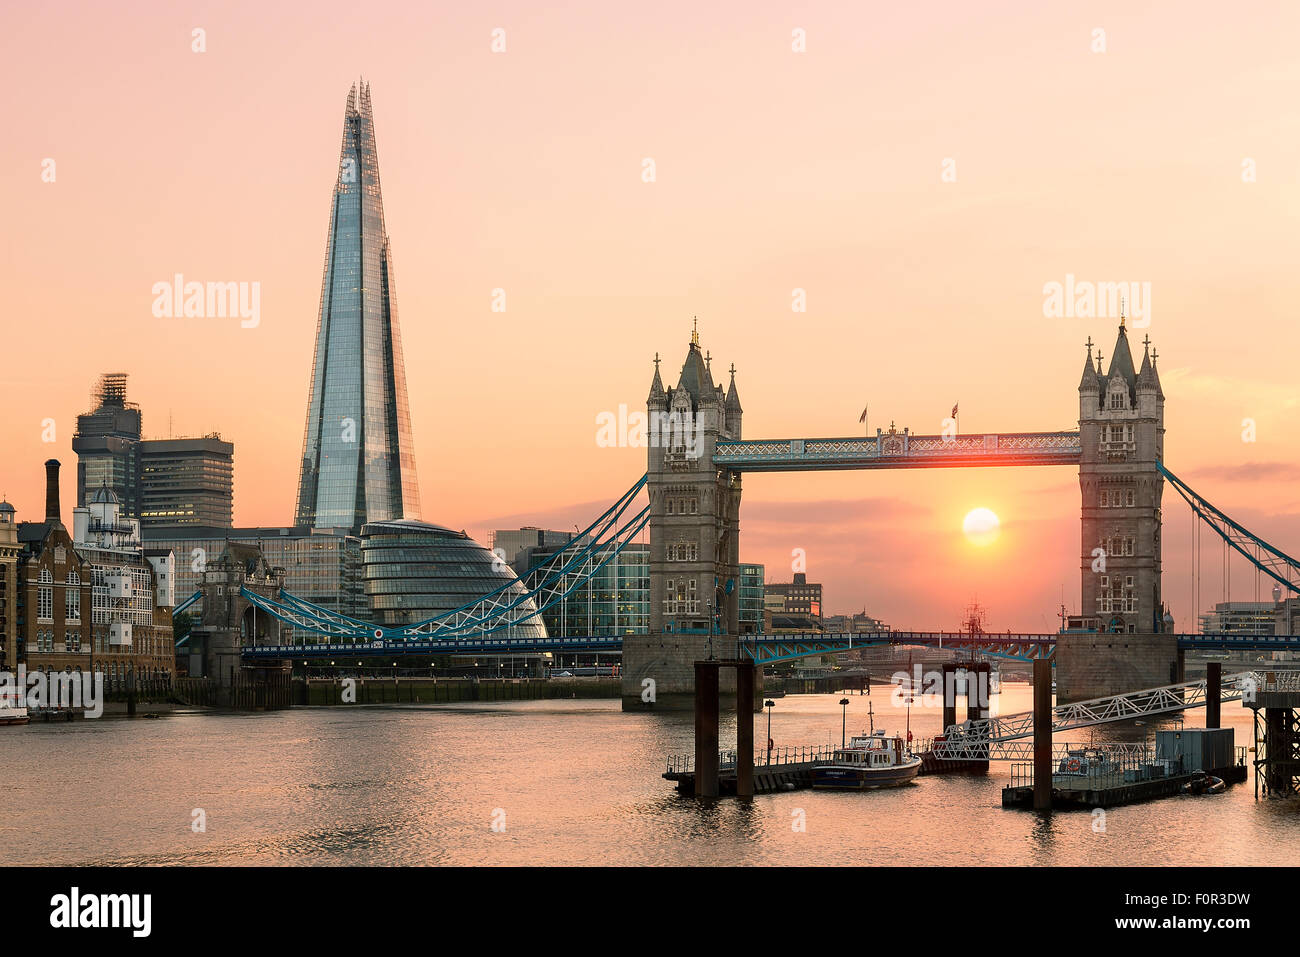 Londres, el Tower Bridge y el Shard London Bridge al atardecer Imagen De Stock